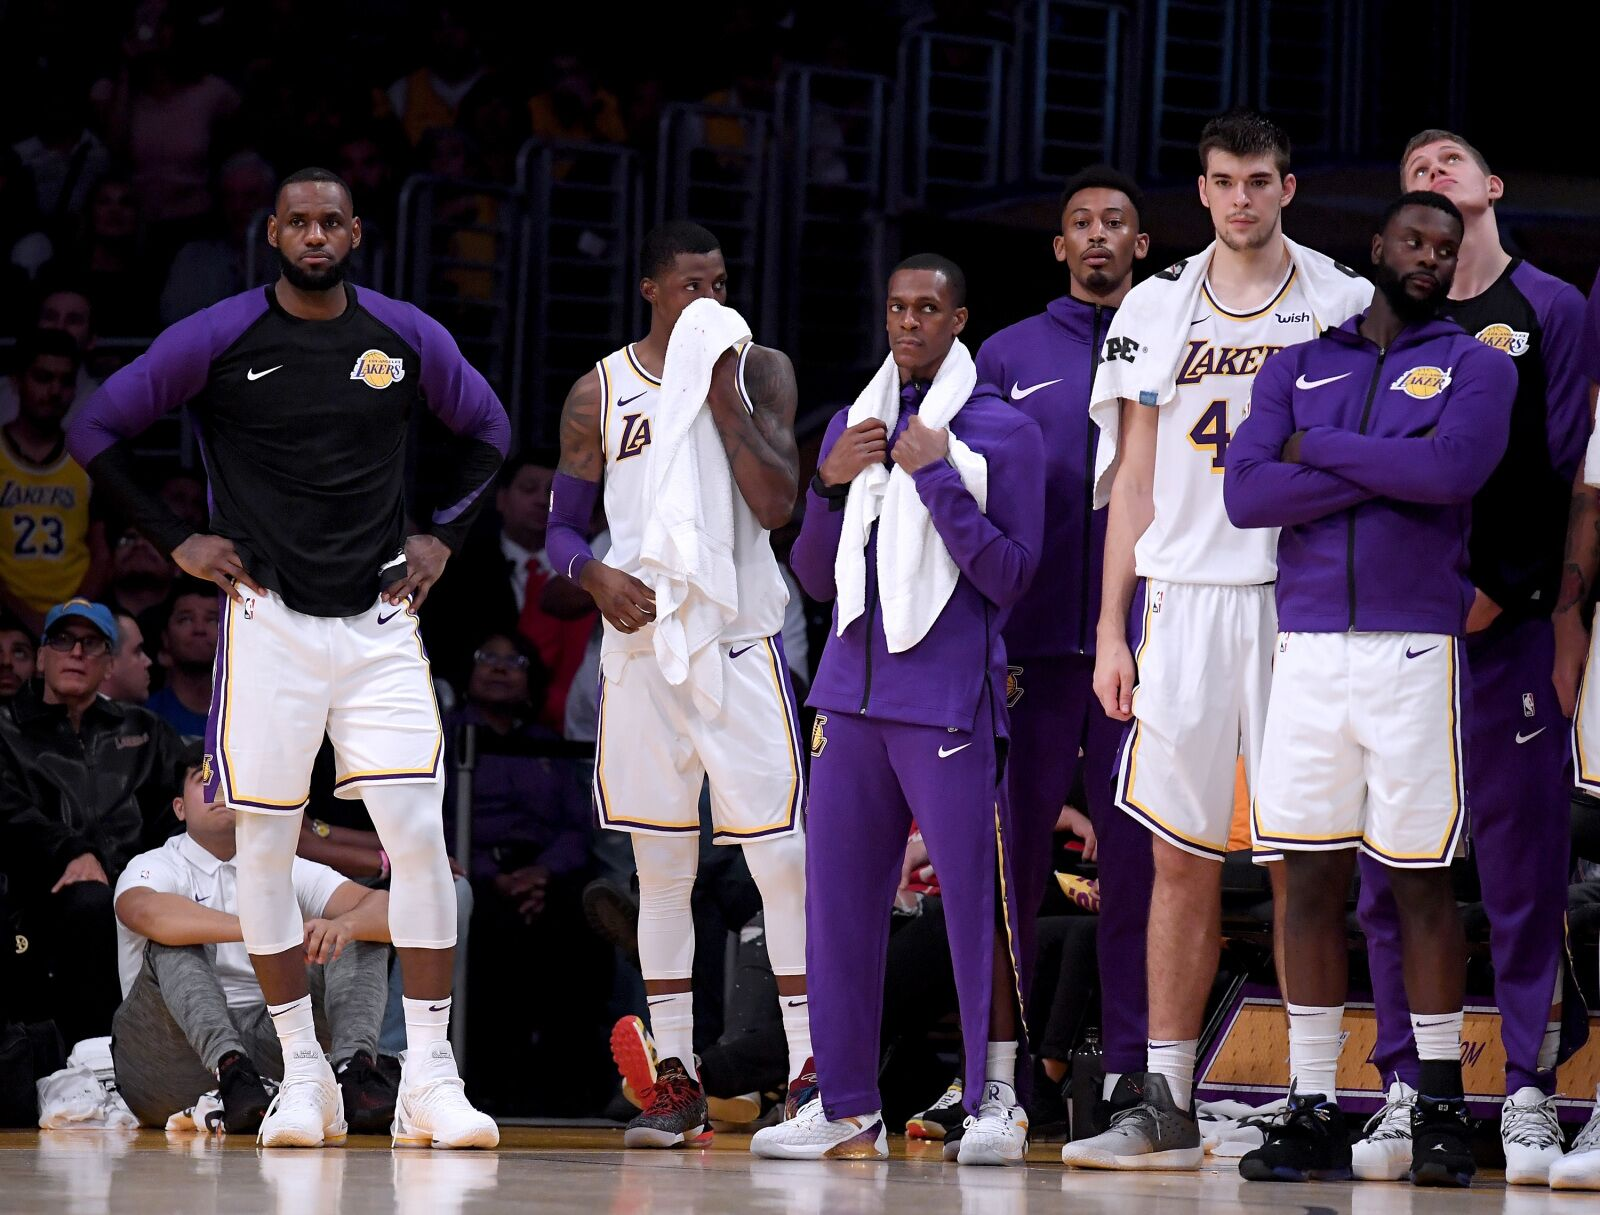 a9033c6e7d3b Los Angeles Lakers  The struggles started with Paul George in 2017